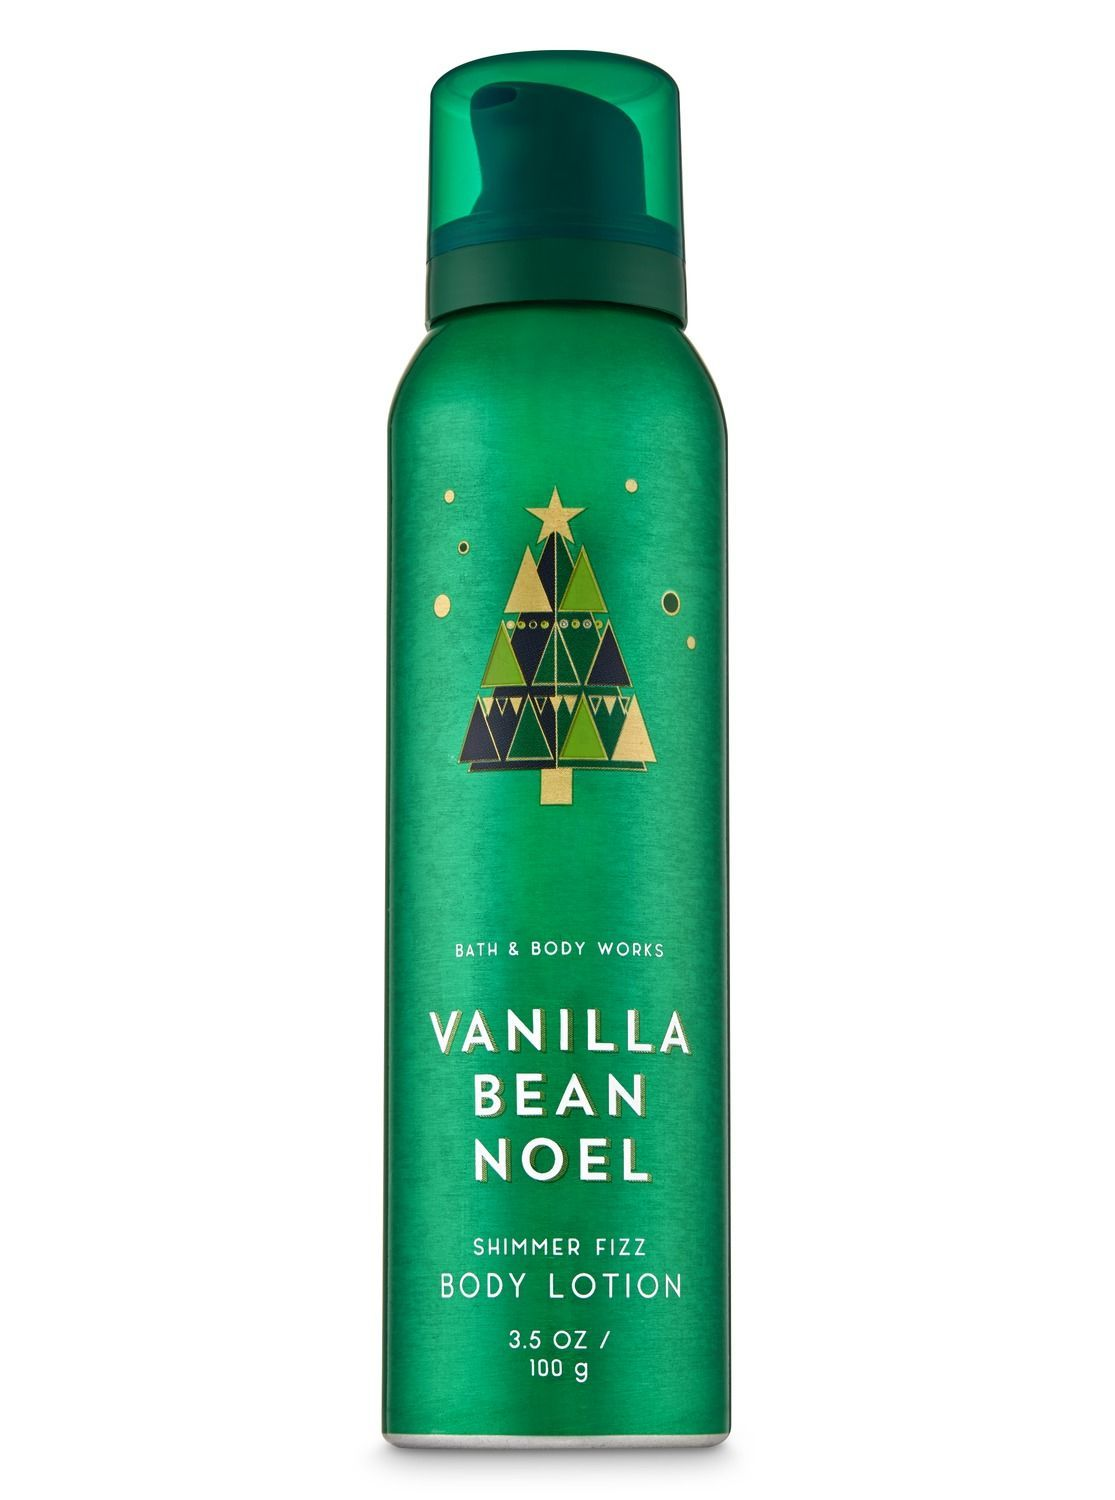 Signature Collection Vanilla Bean Noel Shimmer Fizz Body Lotion